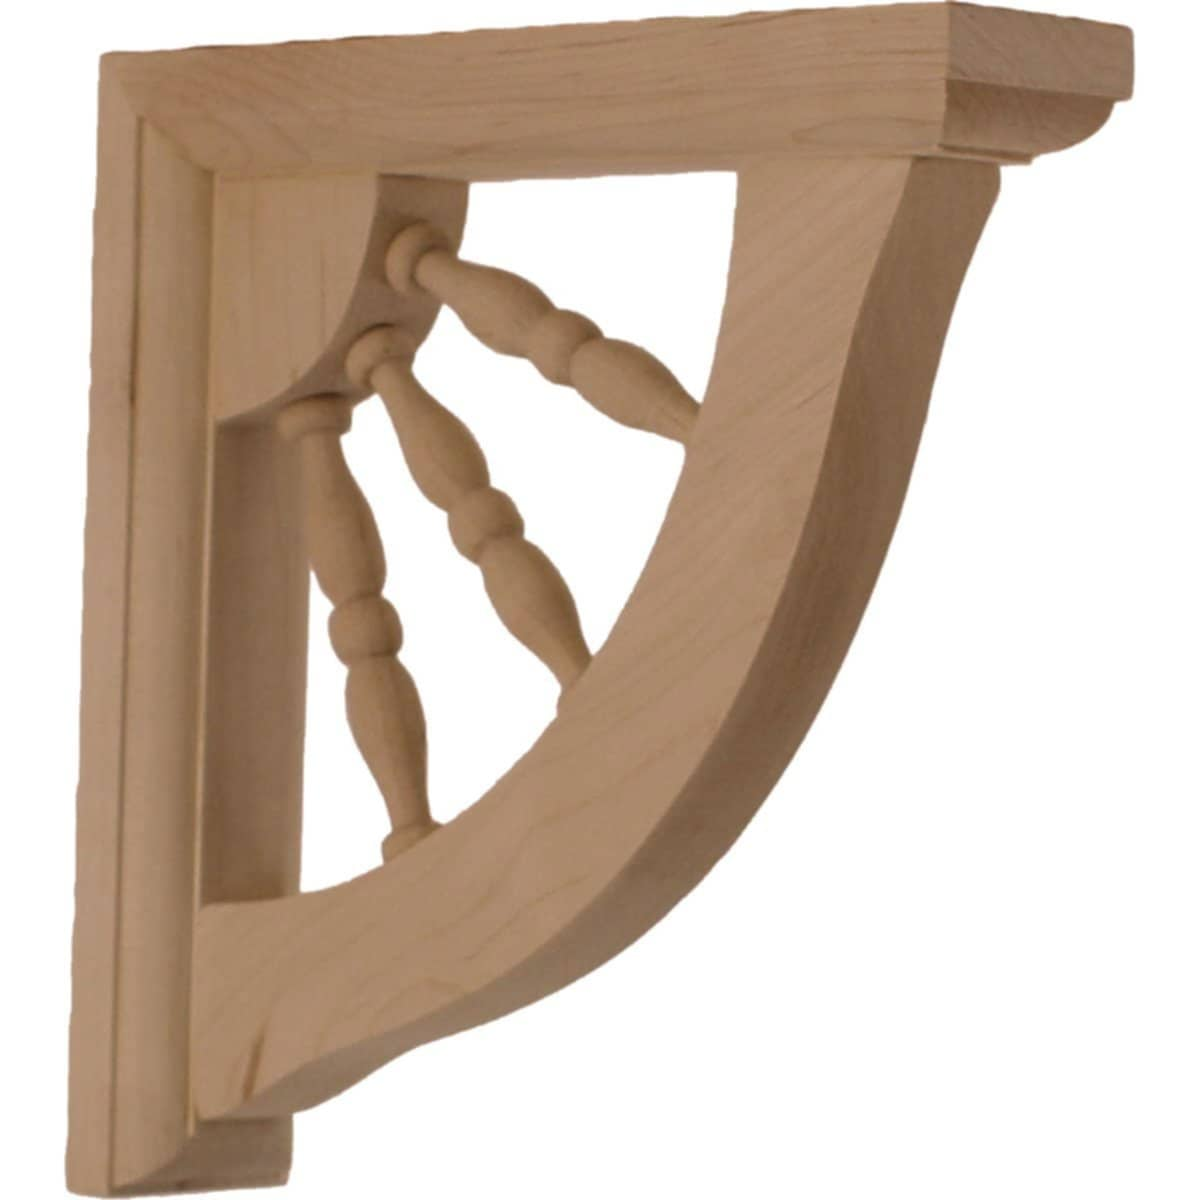 Wood Shelf Brackets Image